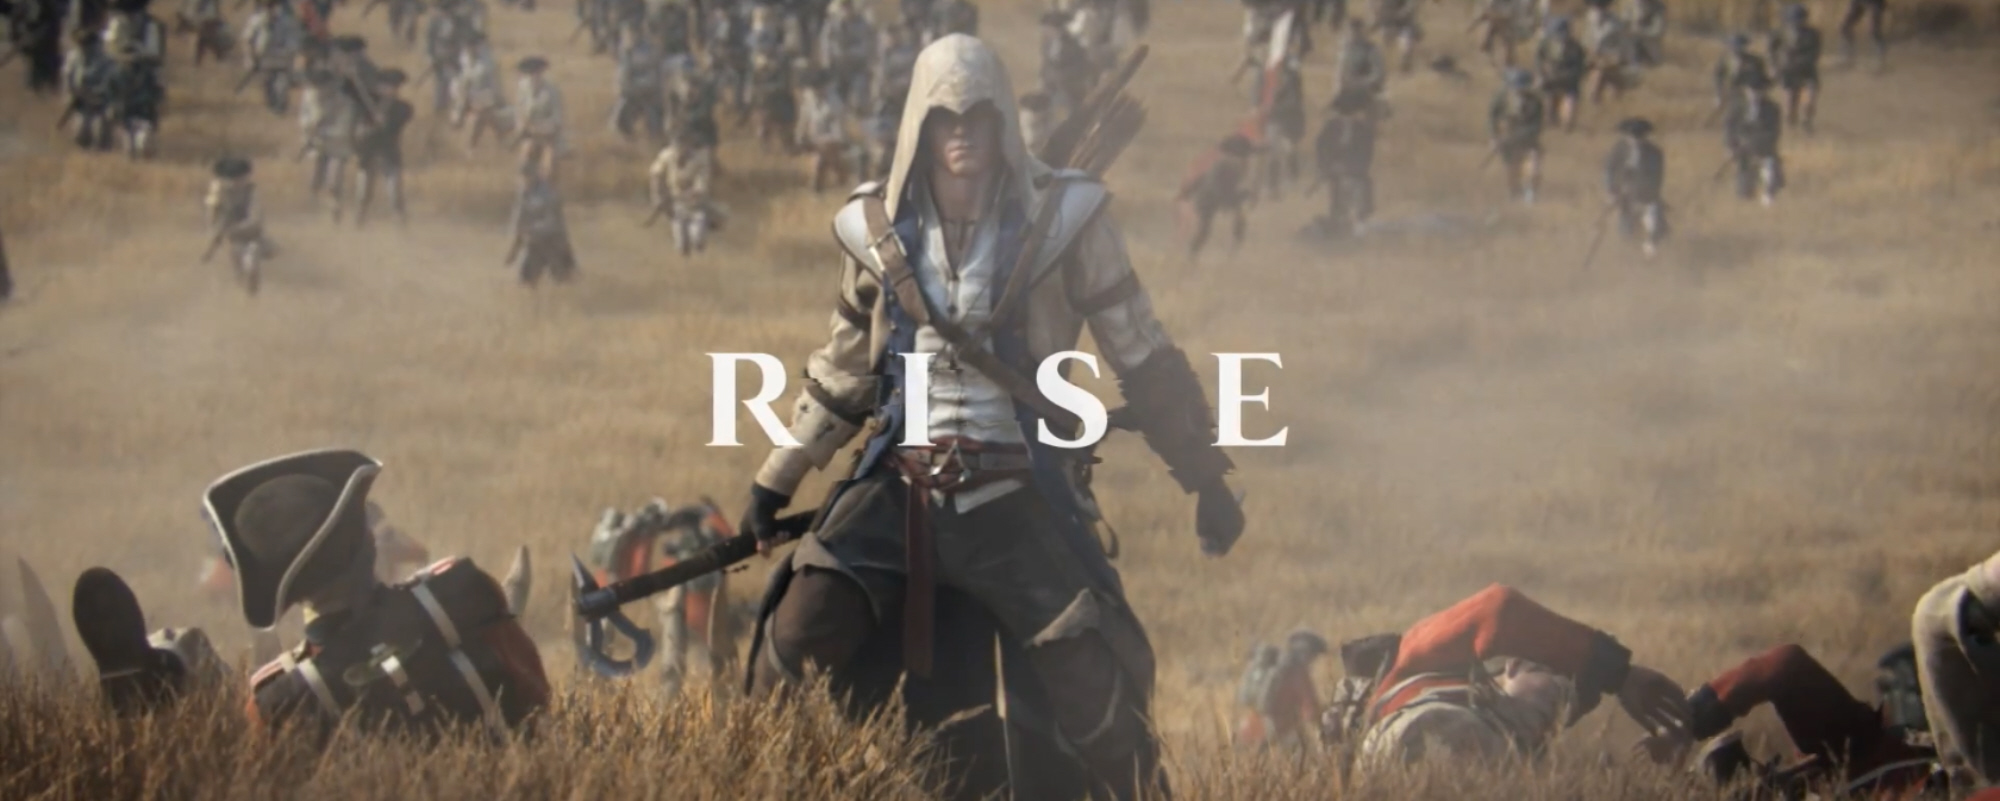 Top Wallpaper Horse Assassin'S Creed - assassins-creed-3-rise-screenshot-of-live-action-trailer  Collection_397437.jpg